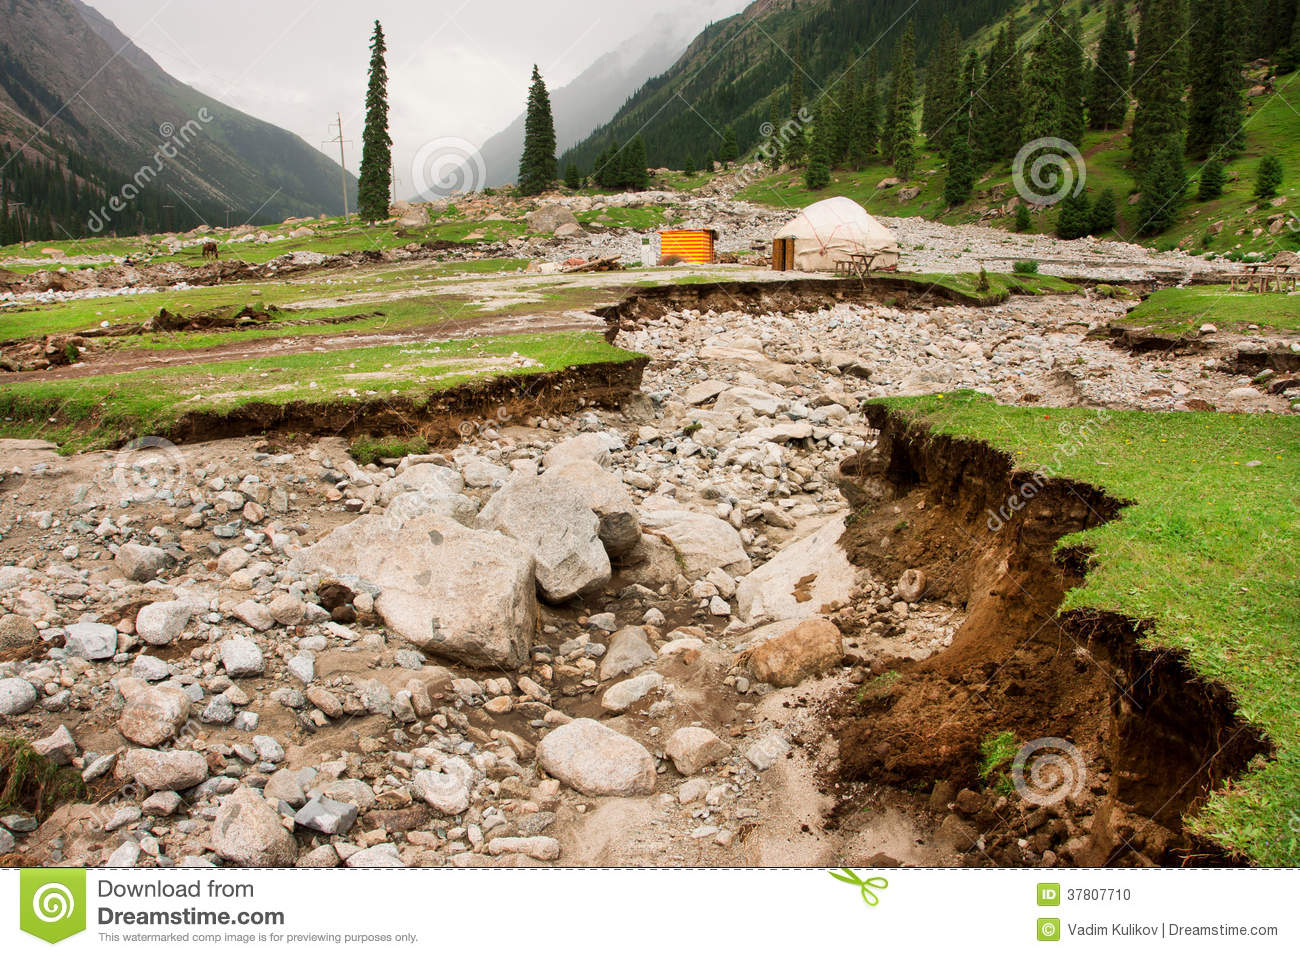 Broken soil by earthquake and lonely dwelling of a farmer of Central Asia